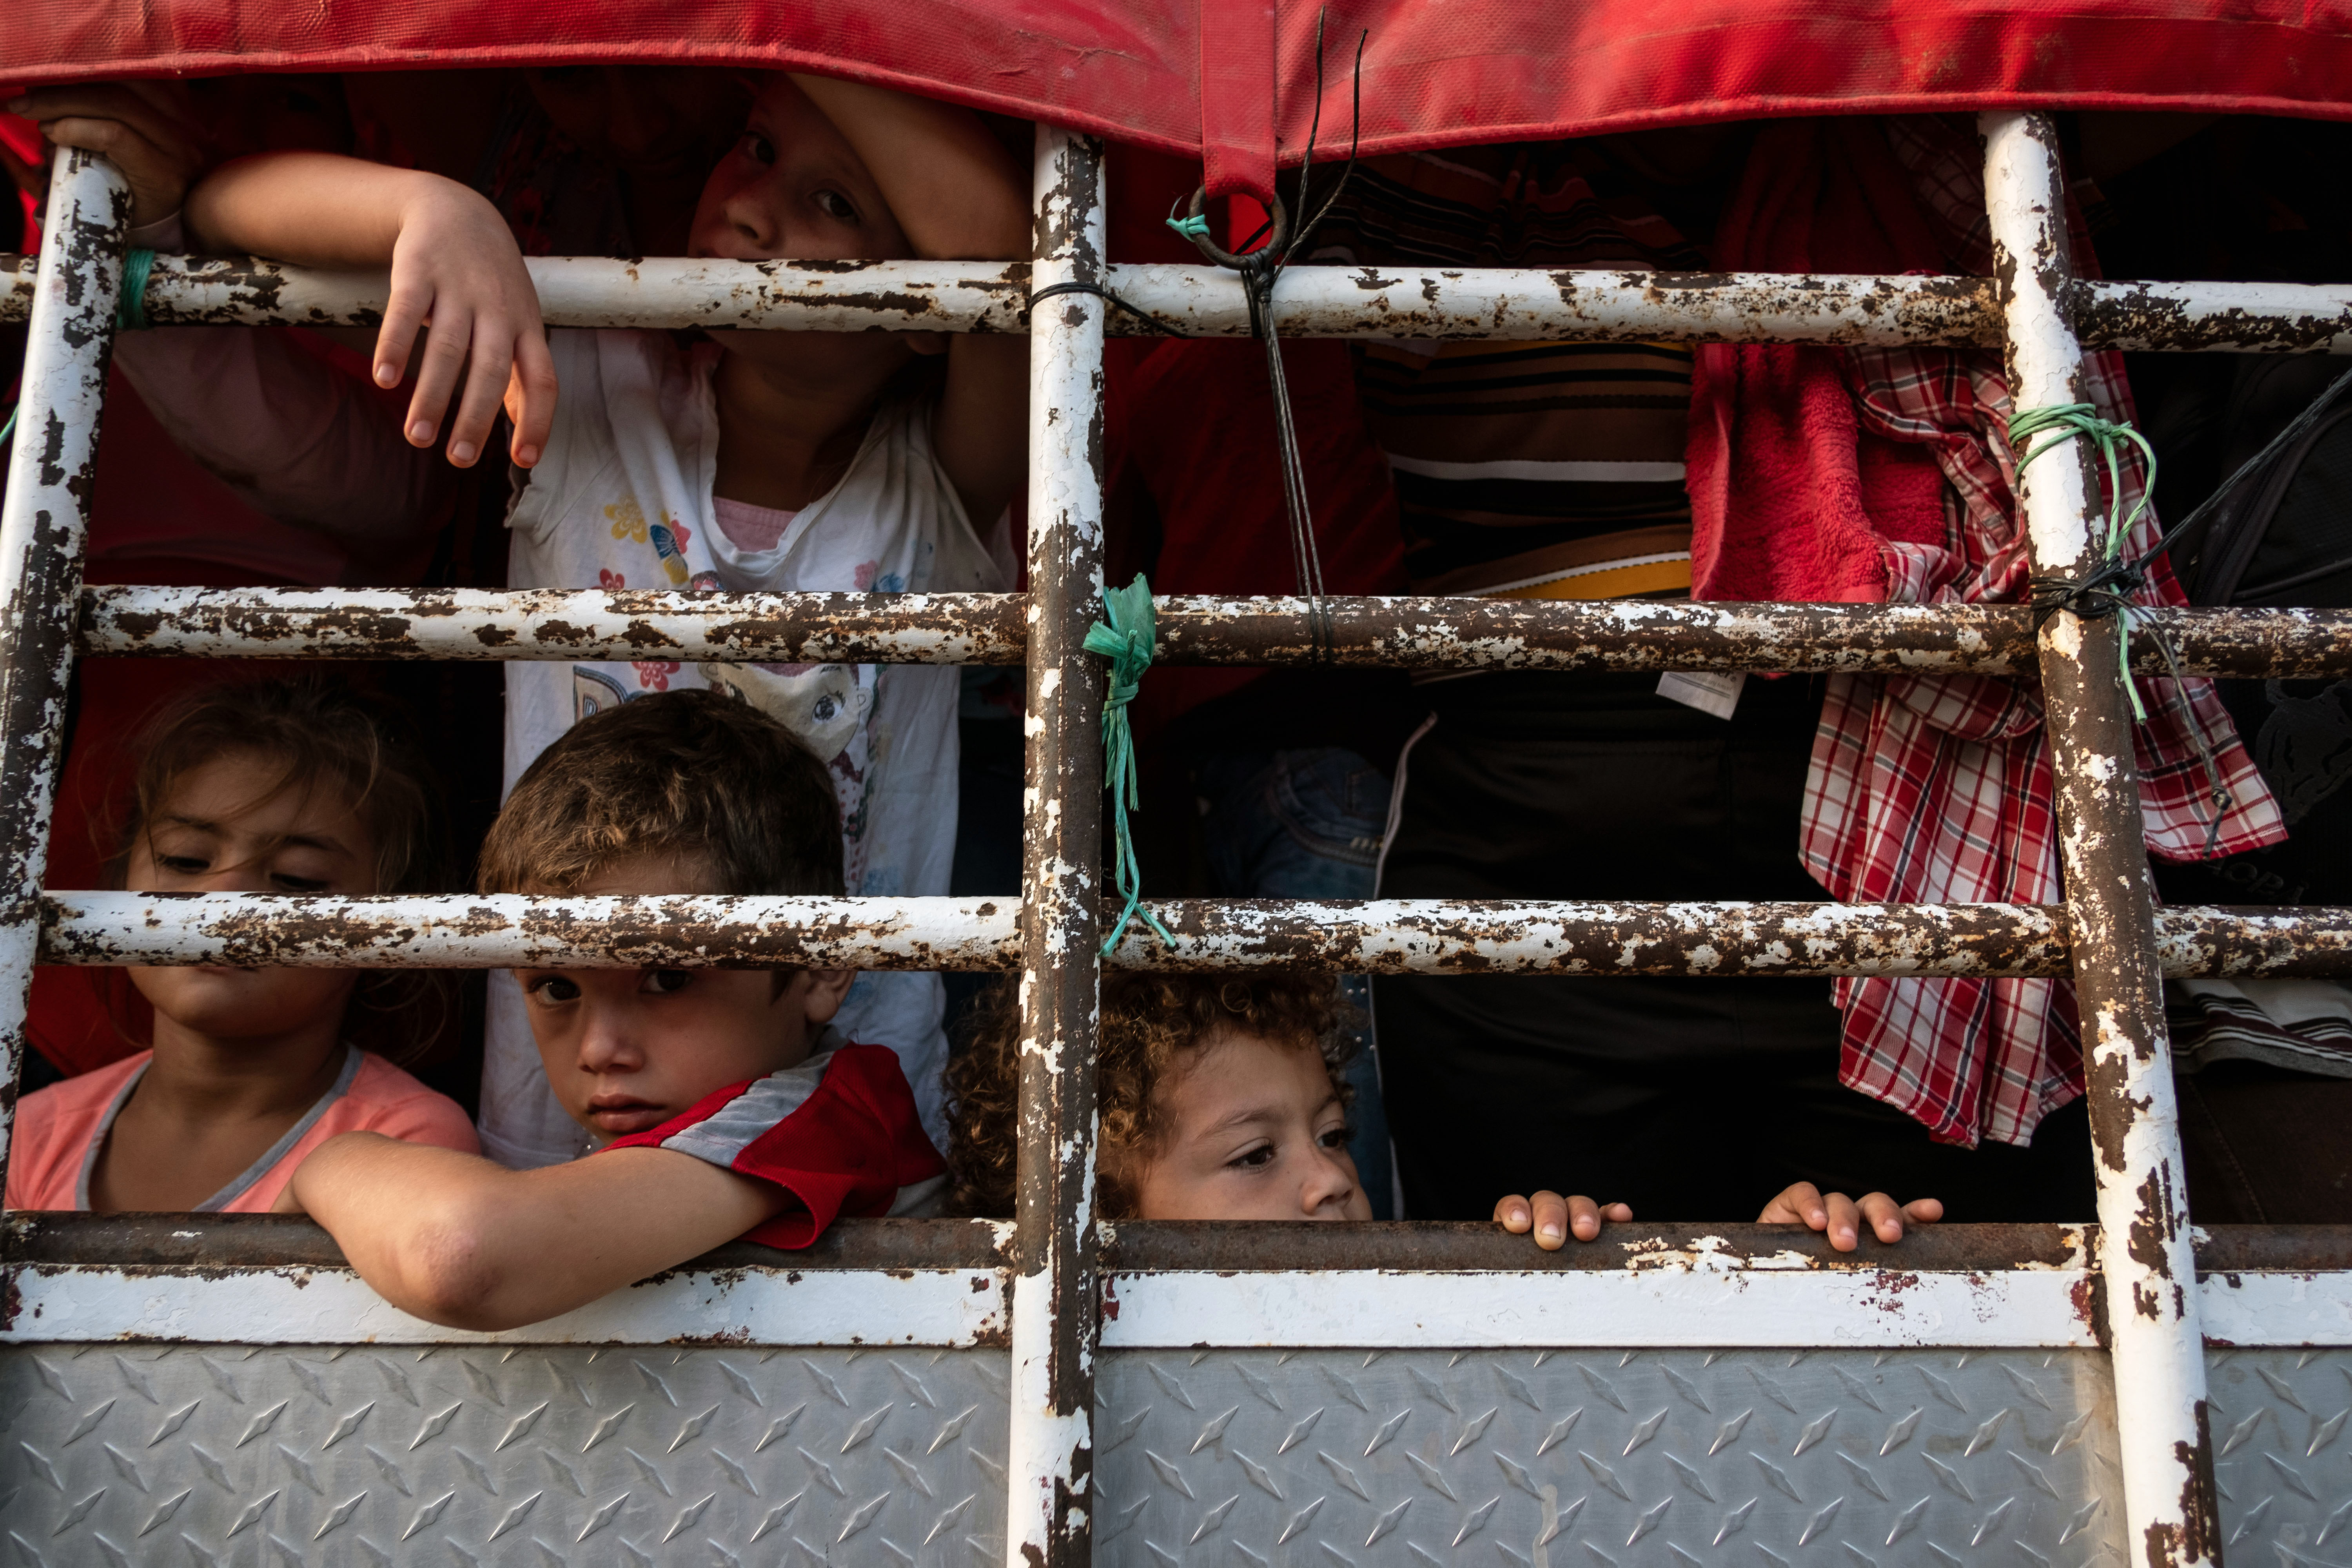 Honduran migrant children heading in a caravan to the US, travel on a truck near Pijijiapan, southern Mexico on October 26, 2018. GUILLERMO ARIAS/AFP/Getty Images